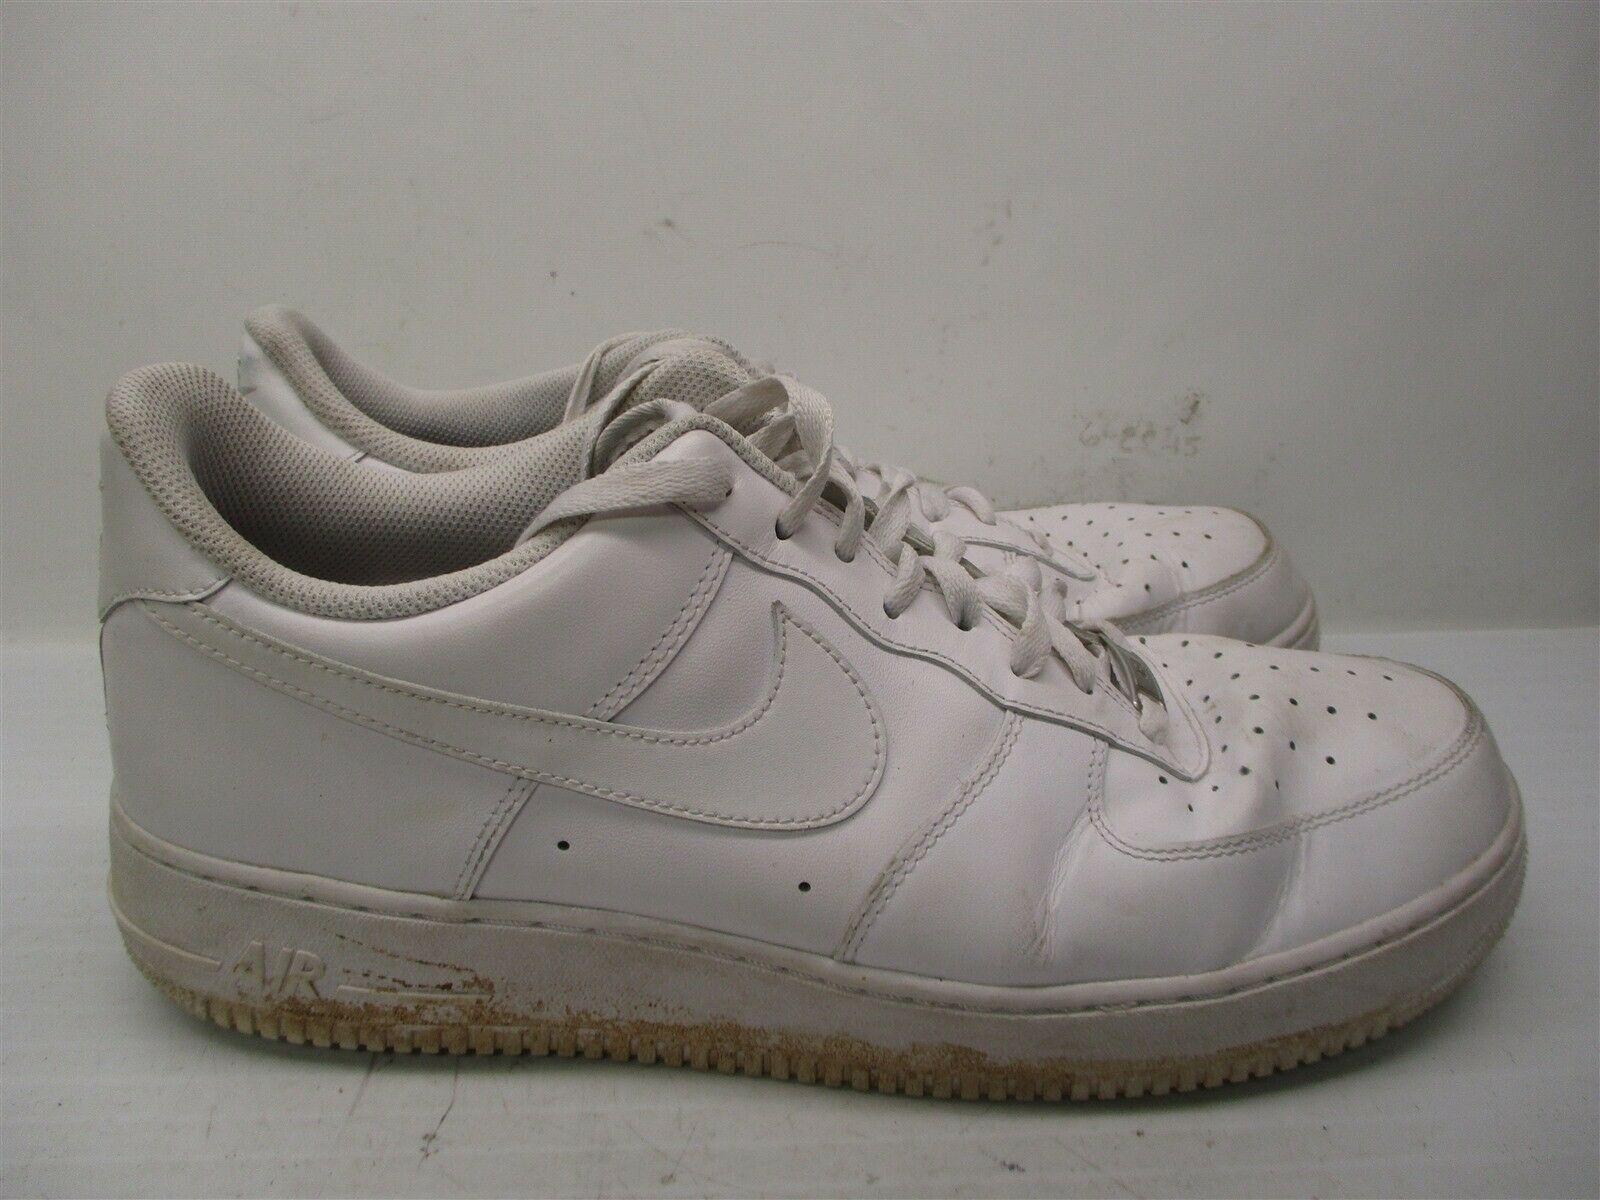 823859d5414b3 Details about NIKE Sneakers Men's Size 13 Athletic AIR FORCE 1 Low Top  White Leather